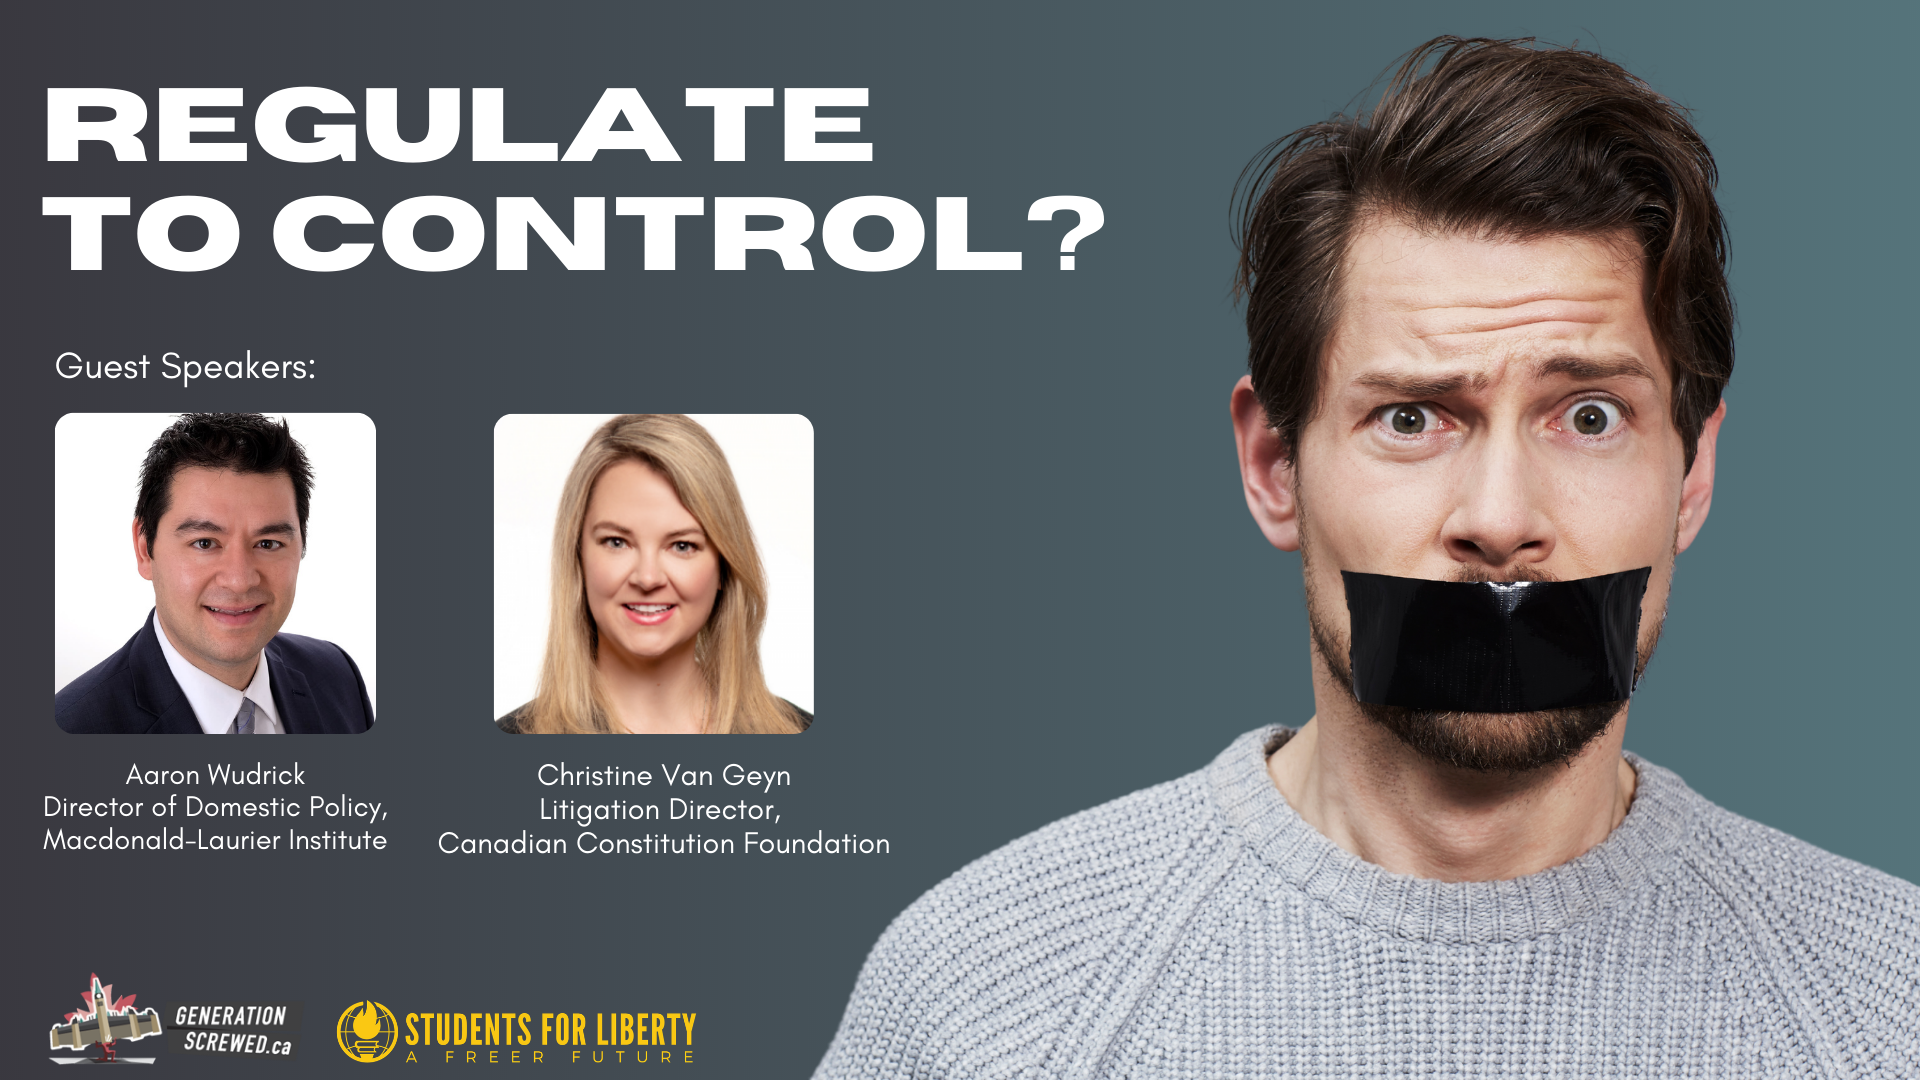 ICYMI: Regulate to Control? How Bill C-10 can give government control over what you say online.